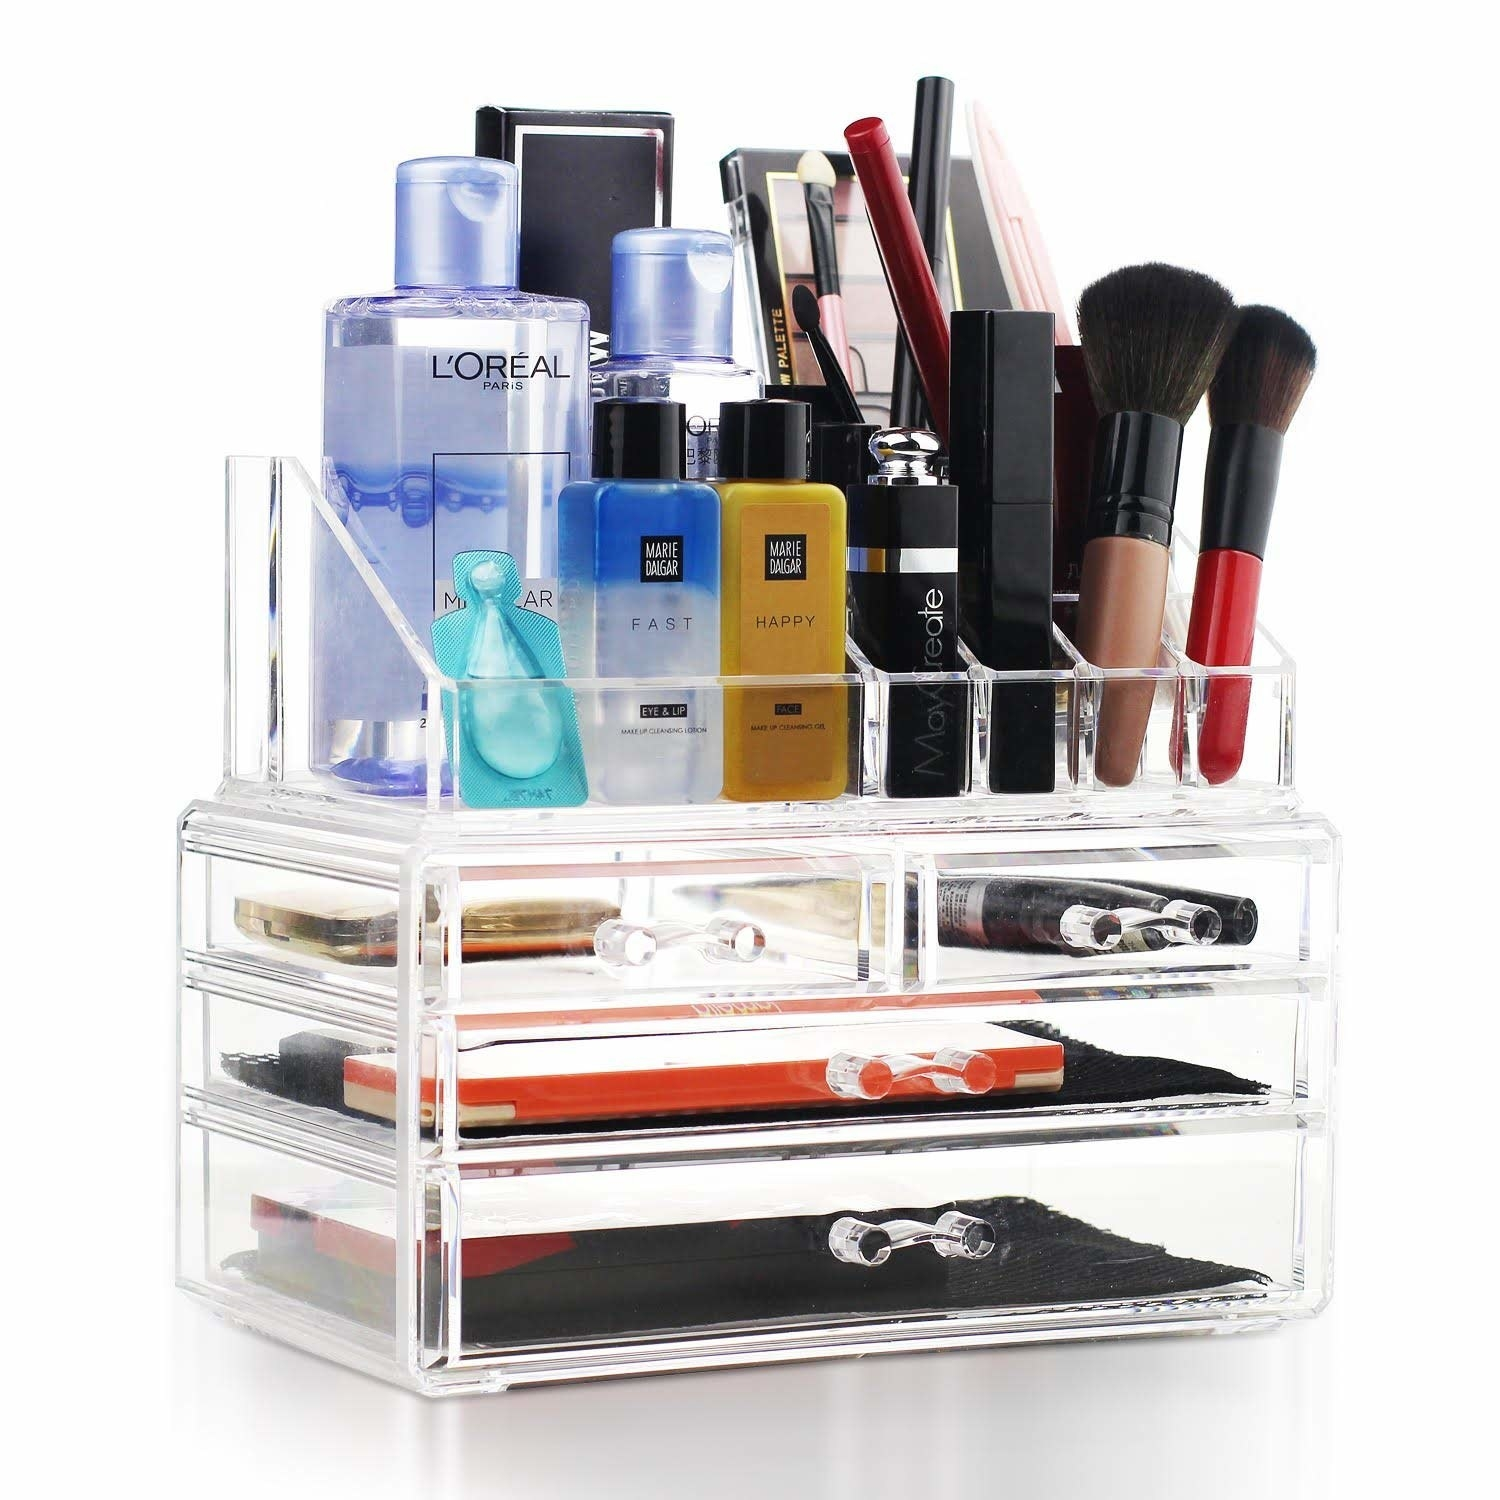 The clear organizer with four drawers